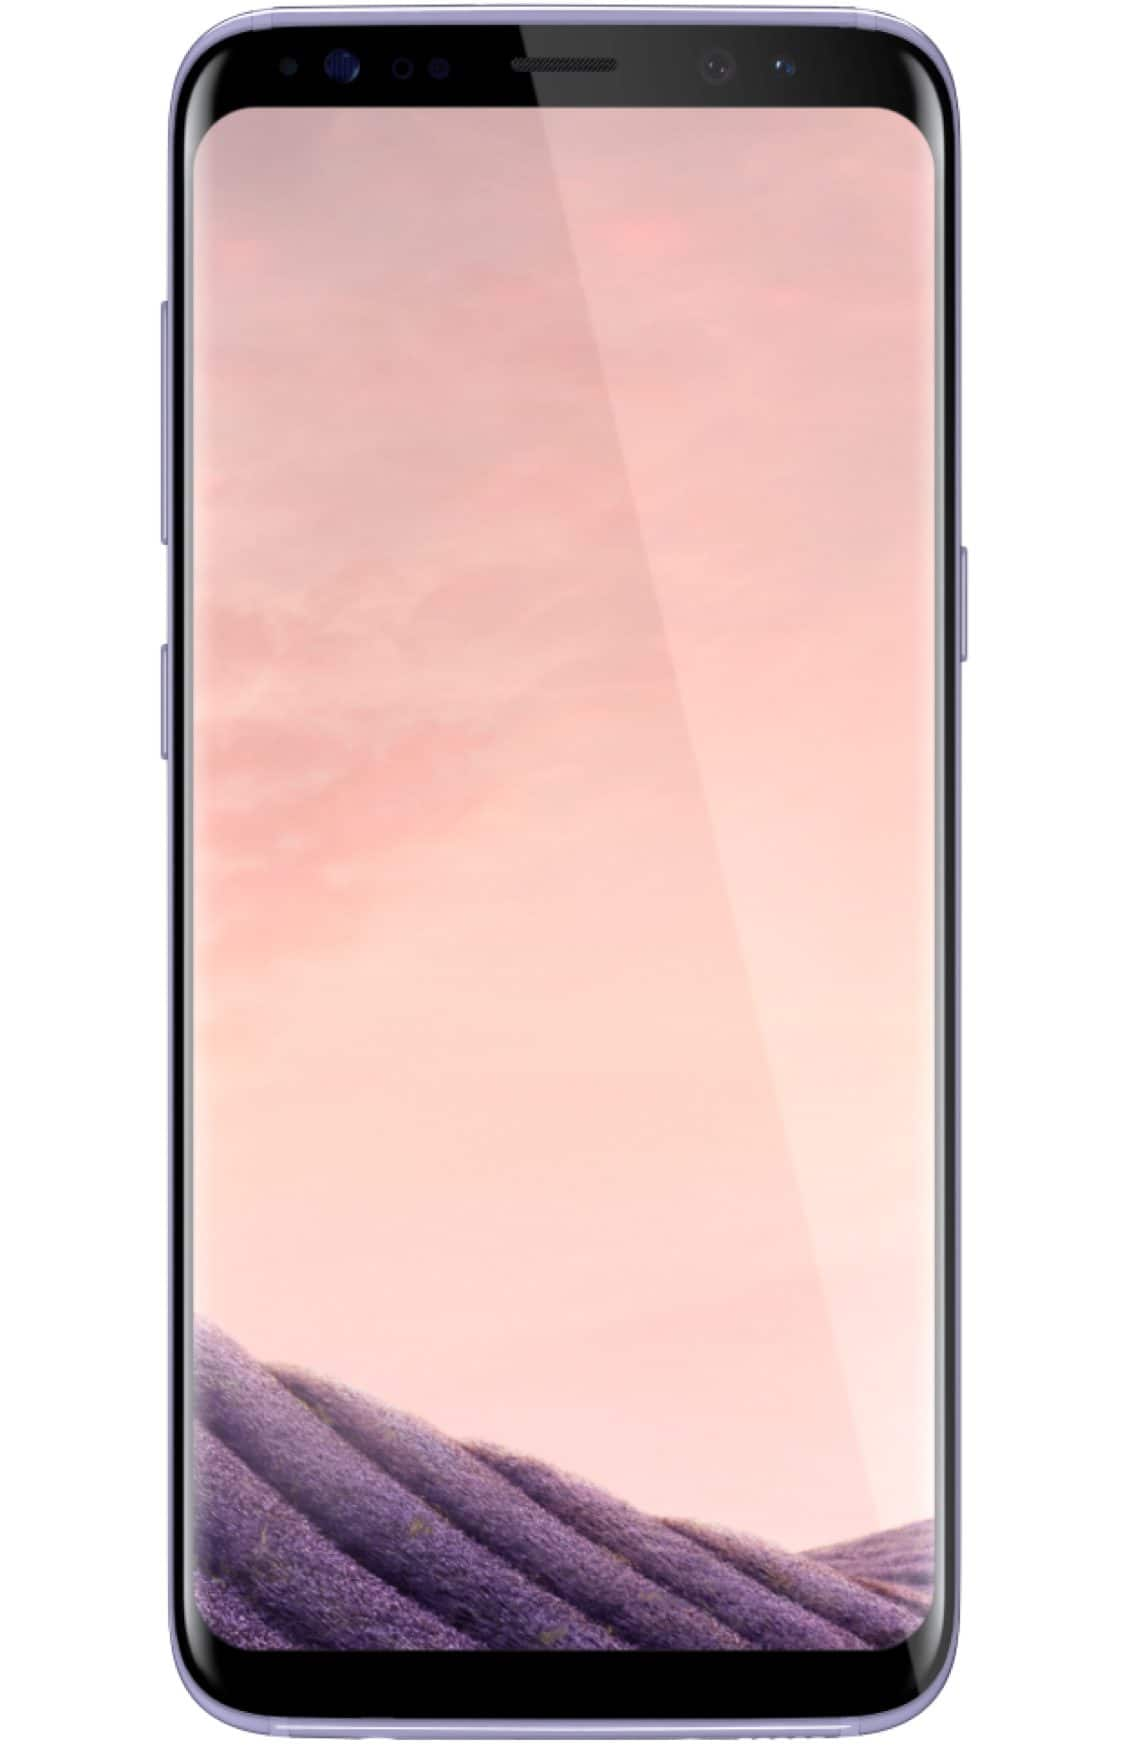 Boost Mobile Samsung Galaxy S8 Pre-owned $299.99, S8 Plus Pre-owned $349.99